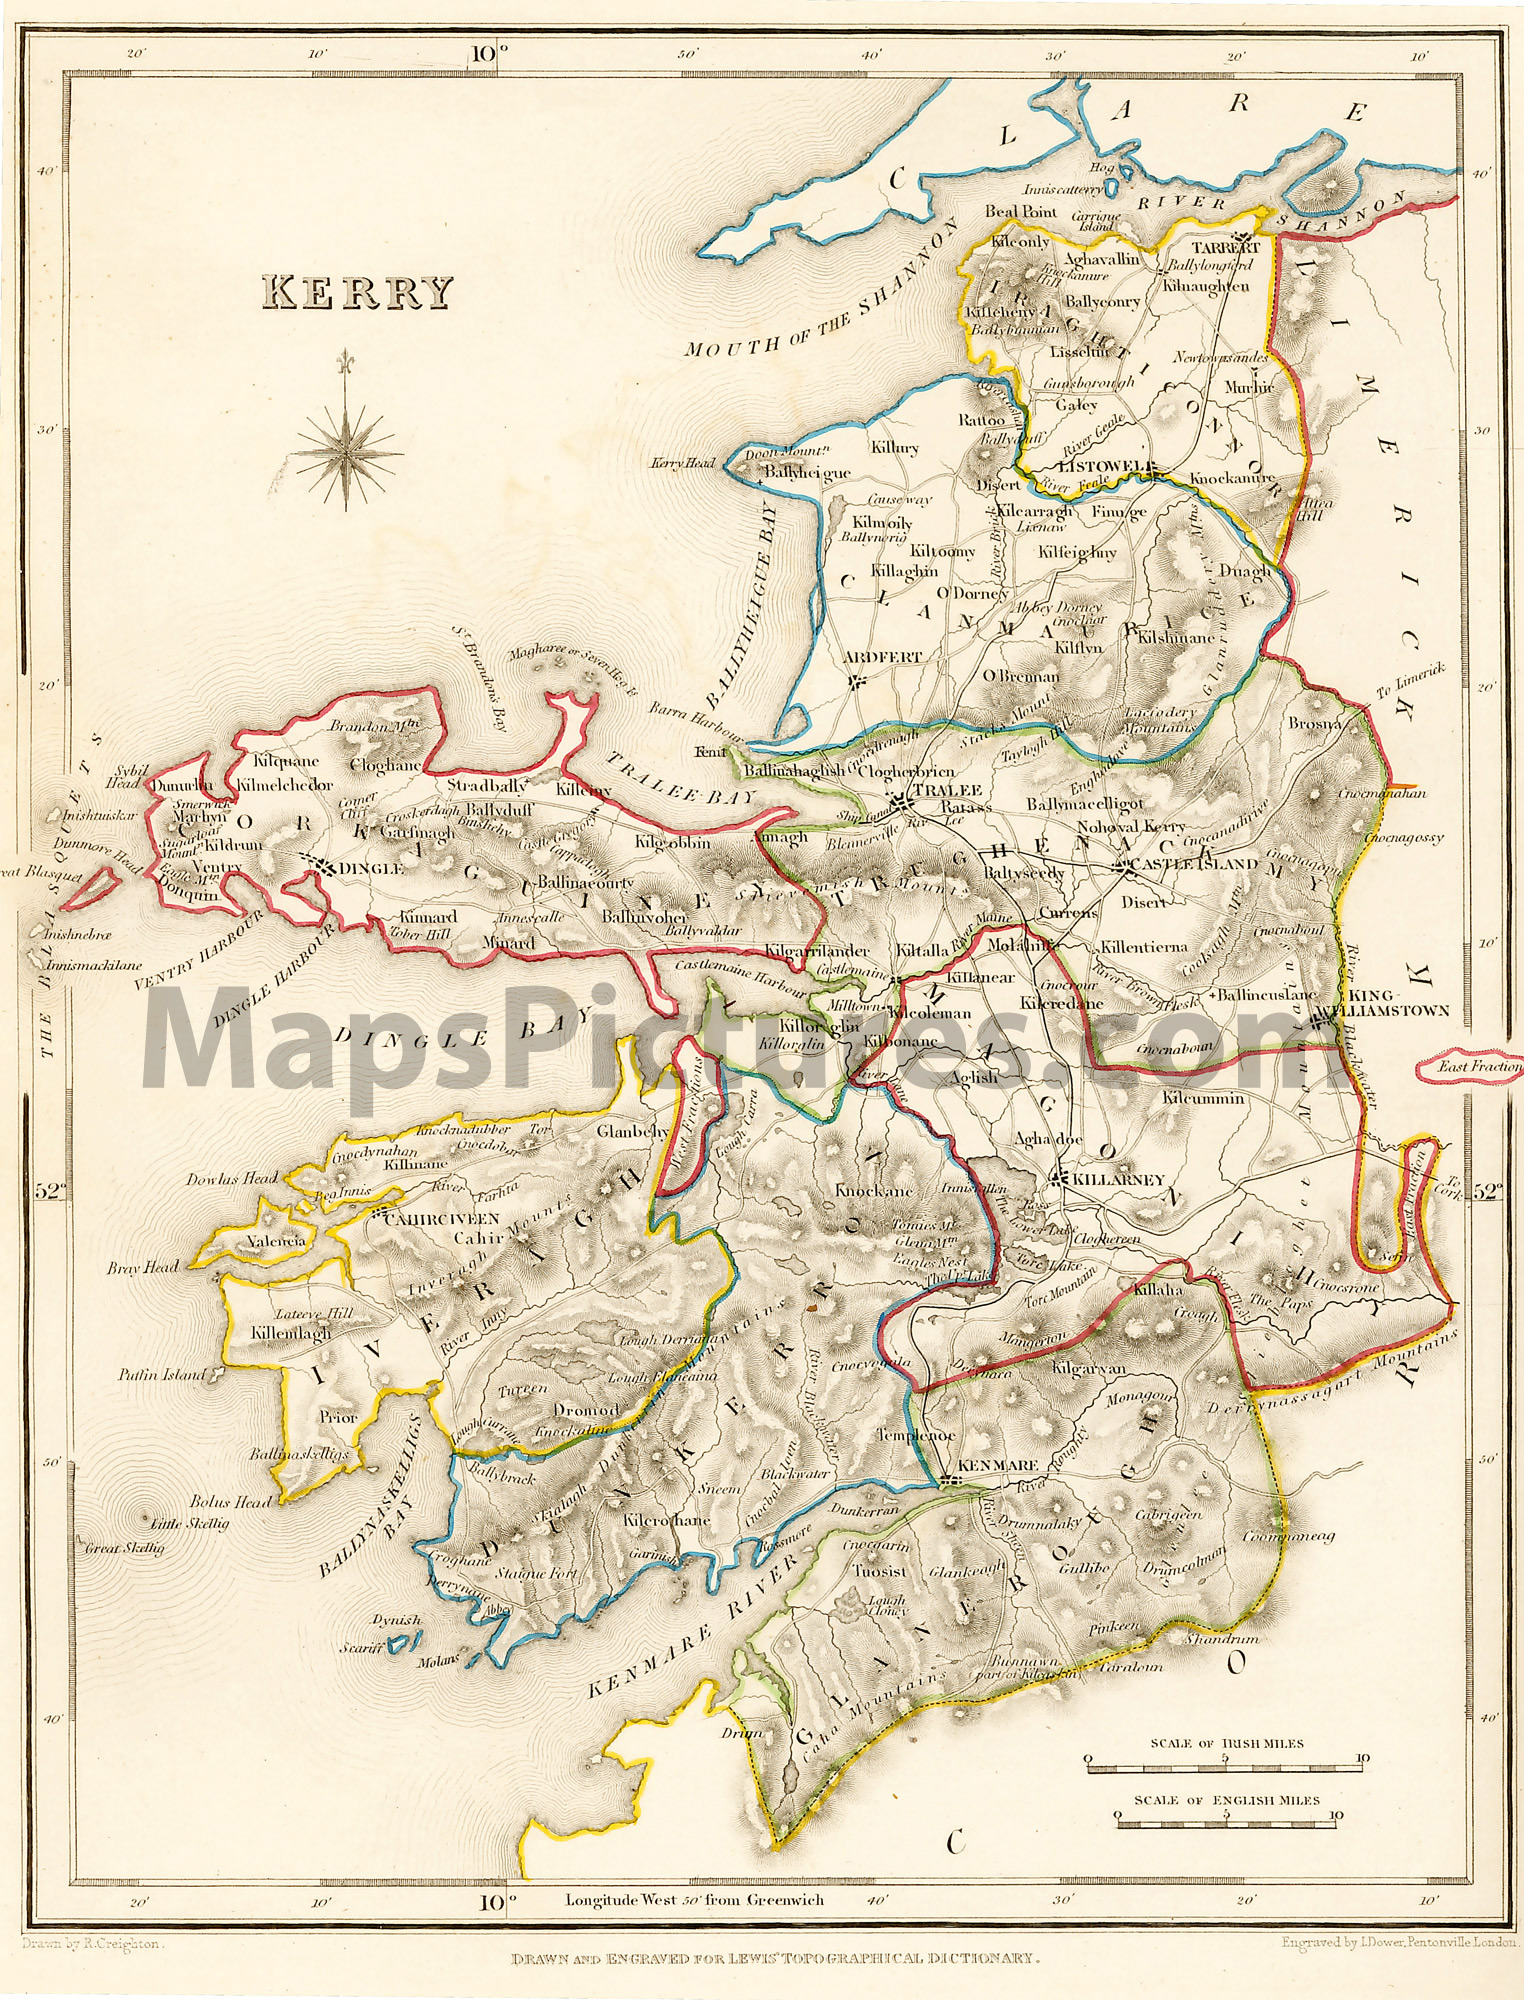 Islands Of Ireland Map.Historic Maps All Island Ireland Map Collections At Ucd And On